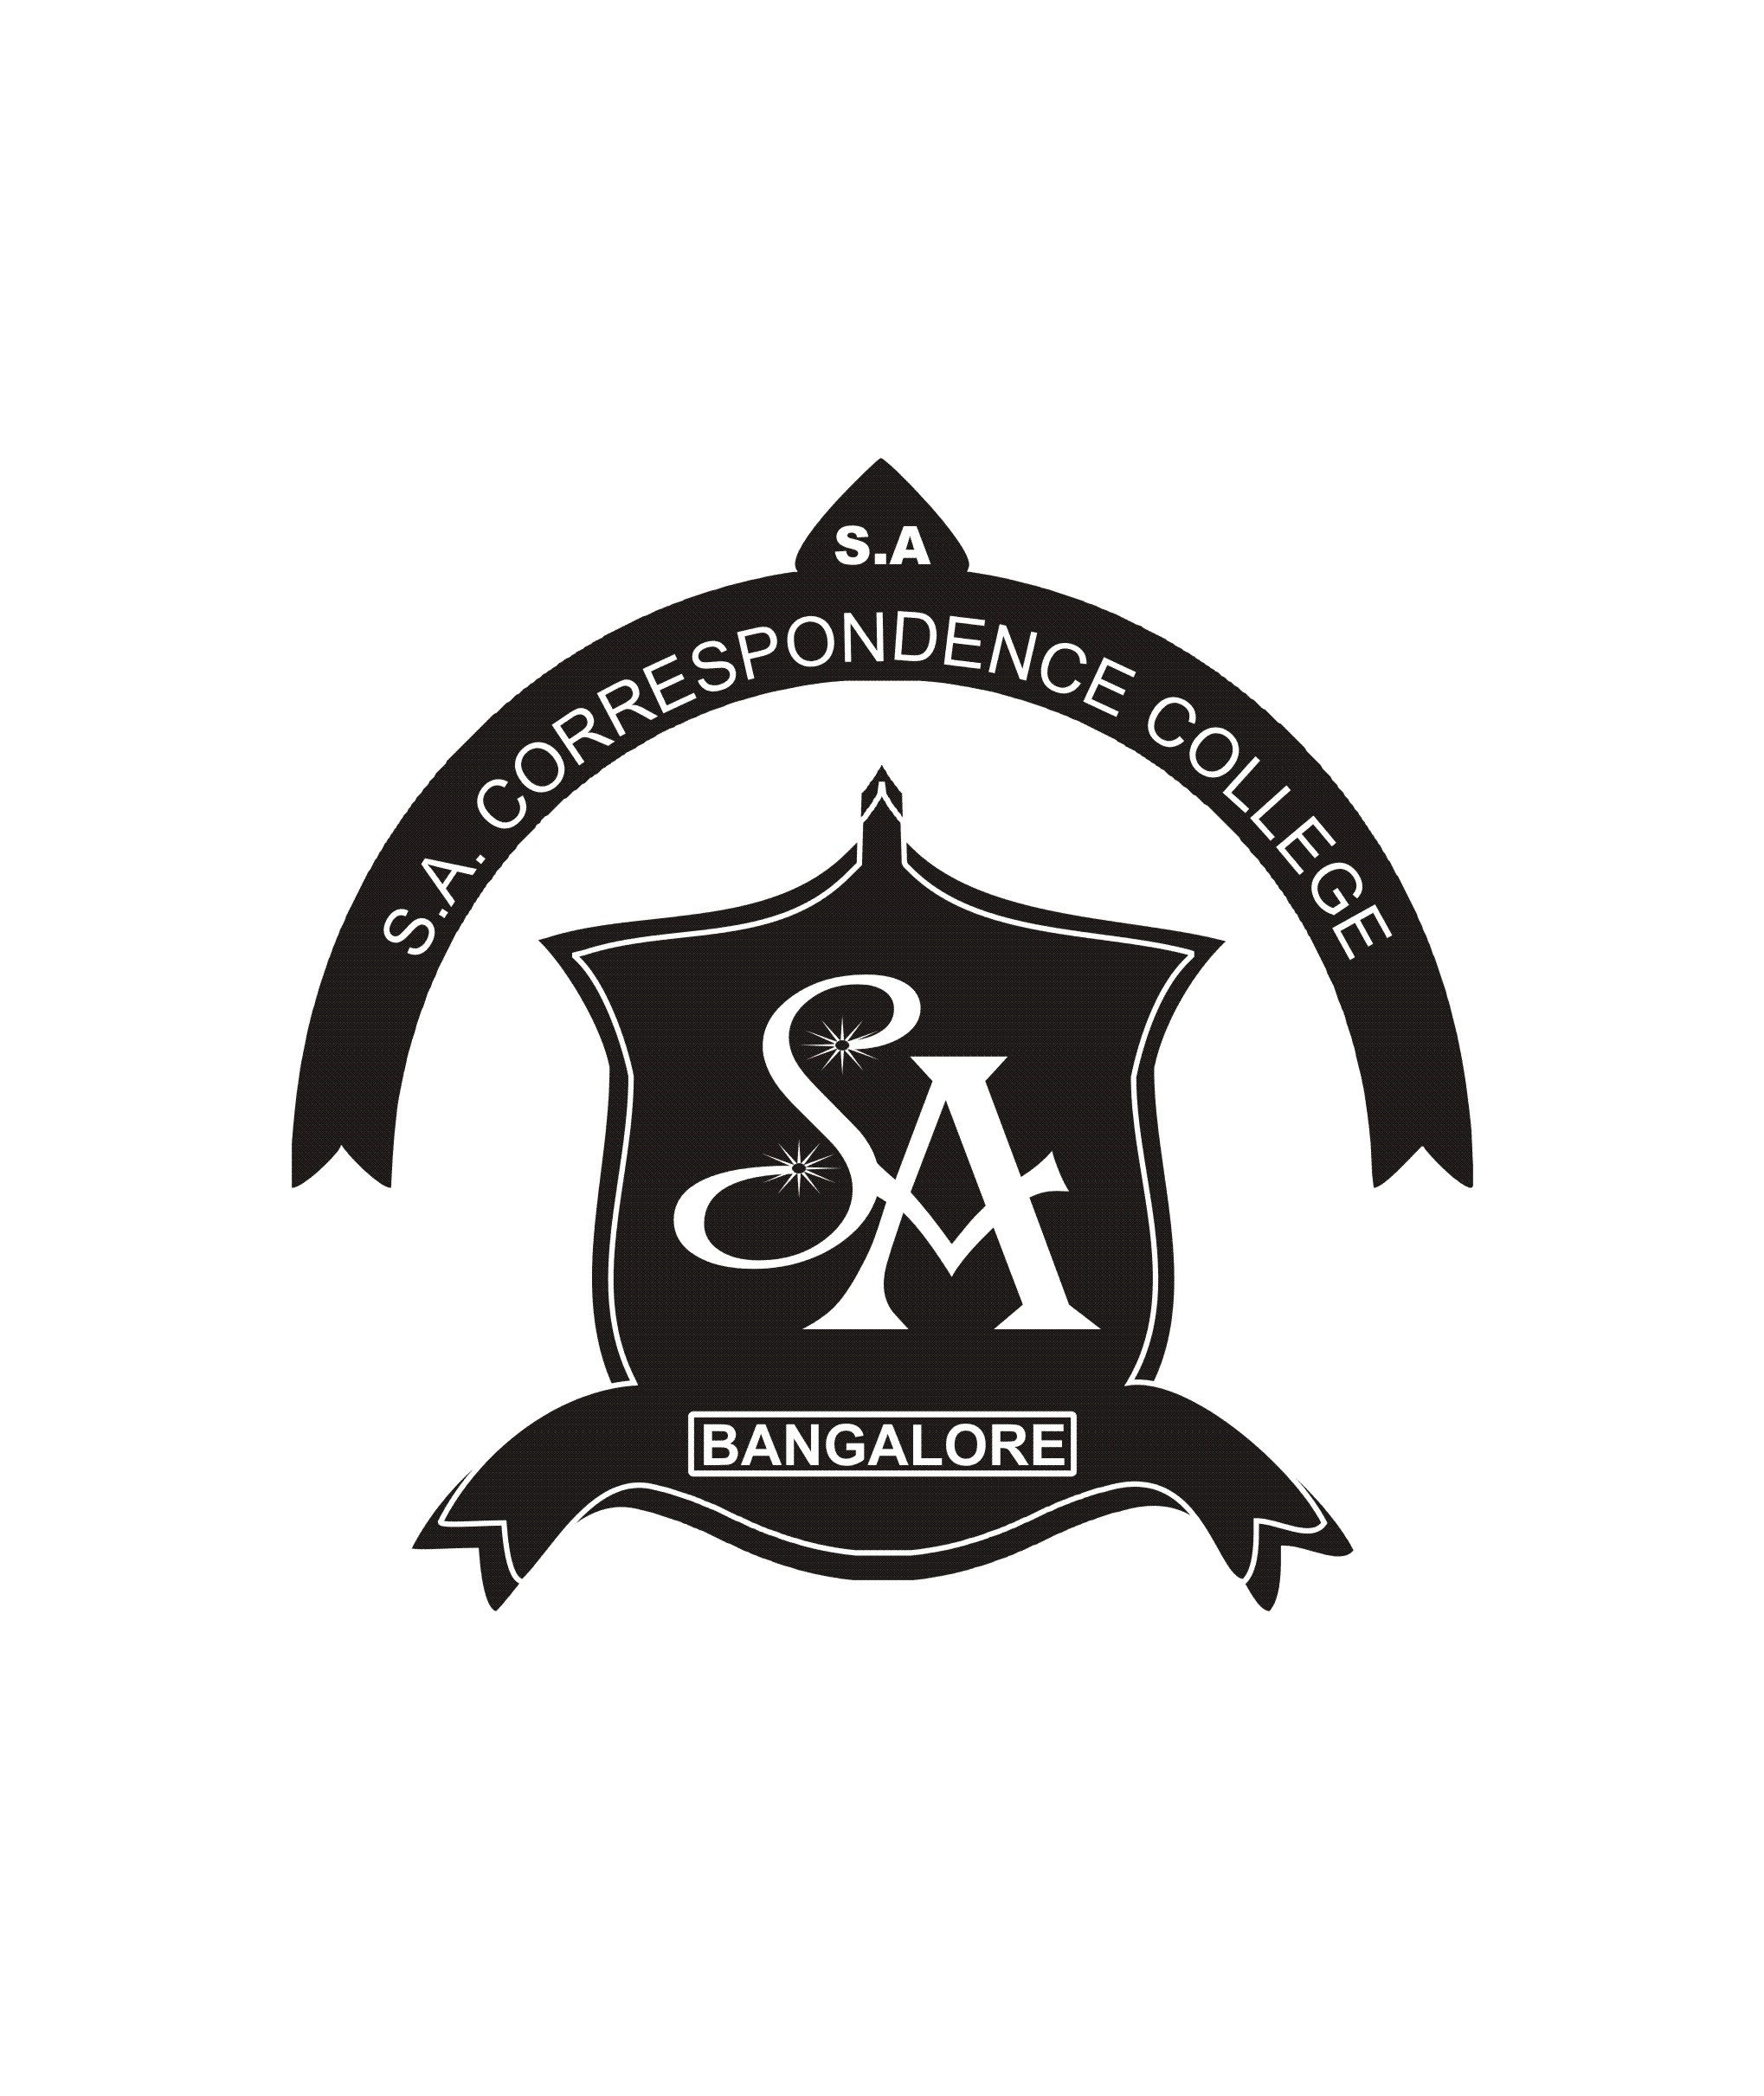 S A Correspondence College